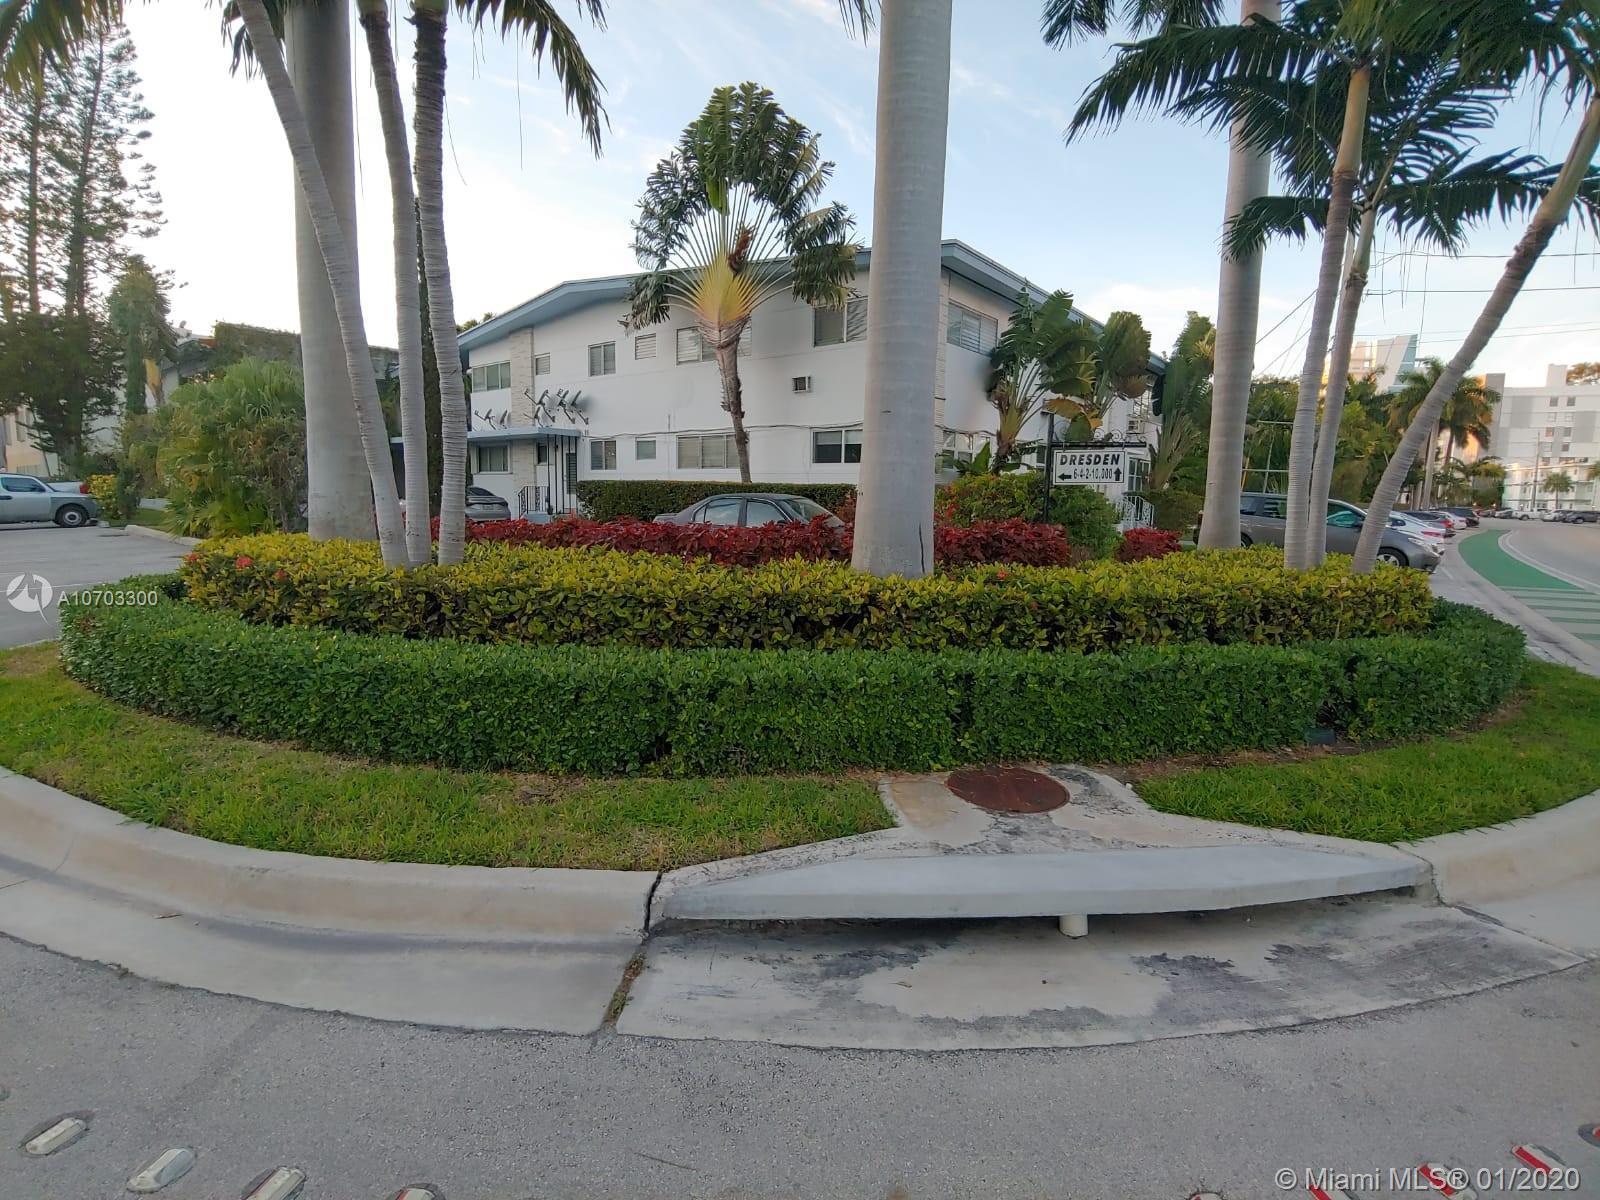 Beautiful Unit in Desirable Bay Harbor Island. This is a 2/1 With Side to Side Pool view Which Is Going To Please A Lot Of People. The Location Is Excellent, Large Master Bedroom, Minutes From Bay Harbor Shops, The Beach, Surfside, Schools And House Of Worship. With New Carpet Floors, Updated Bathroom and Other Extras. The Building Has A Nice Pool And Is Very Well Maintained. Very Easy To Show. Please Call L/A for Instructions. It Won't Last!!!! You Must See It.